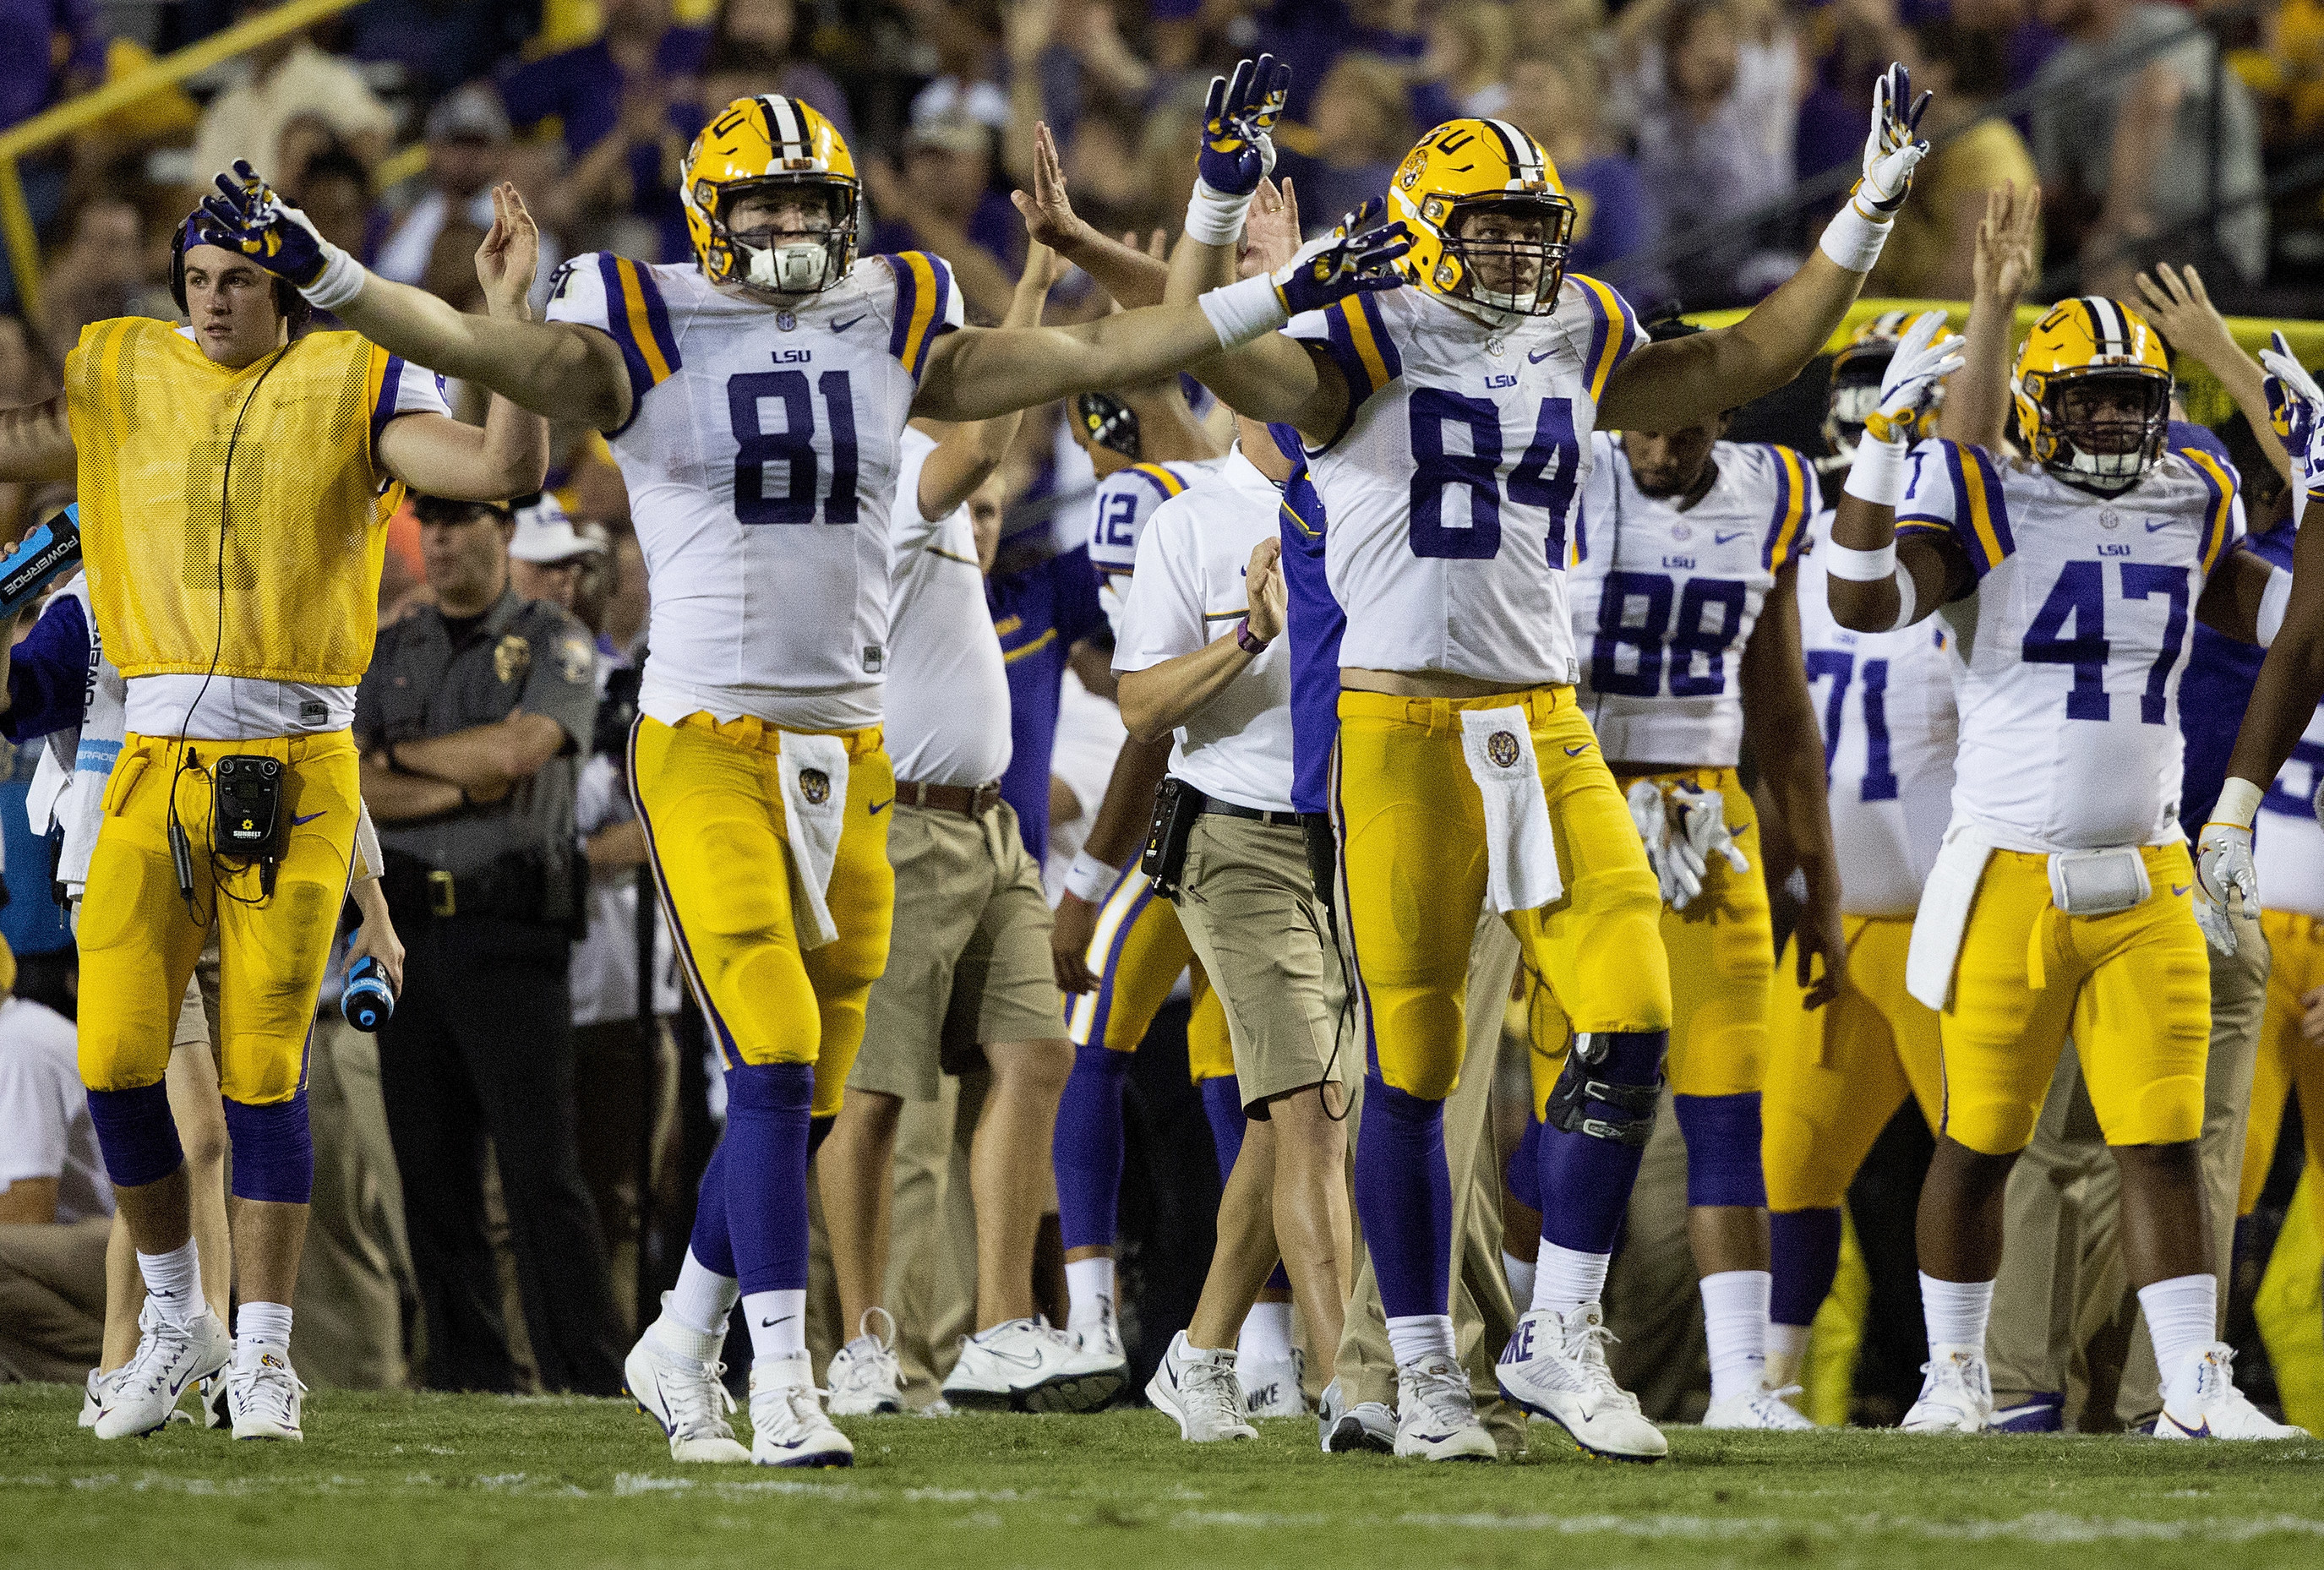 LSU tight ends Colin Jeter (81) and Foster Moreau (84) celebrate as the time winds down during the second half of an NCAA college football game against Missouri in Baton Rouge, La., Saturday, Oct. 1, 2016. LSU won 42-7. (AP Photo/Max Becherer)